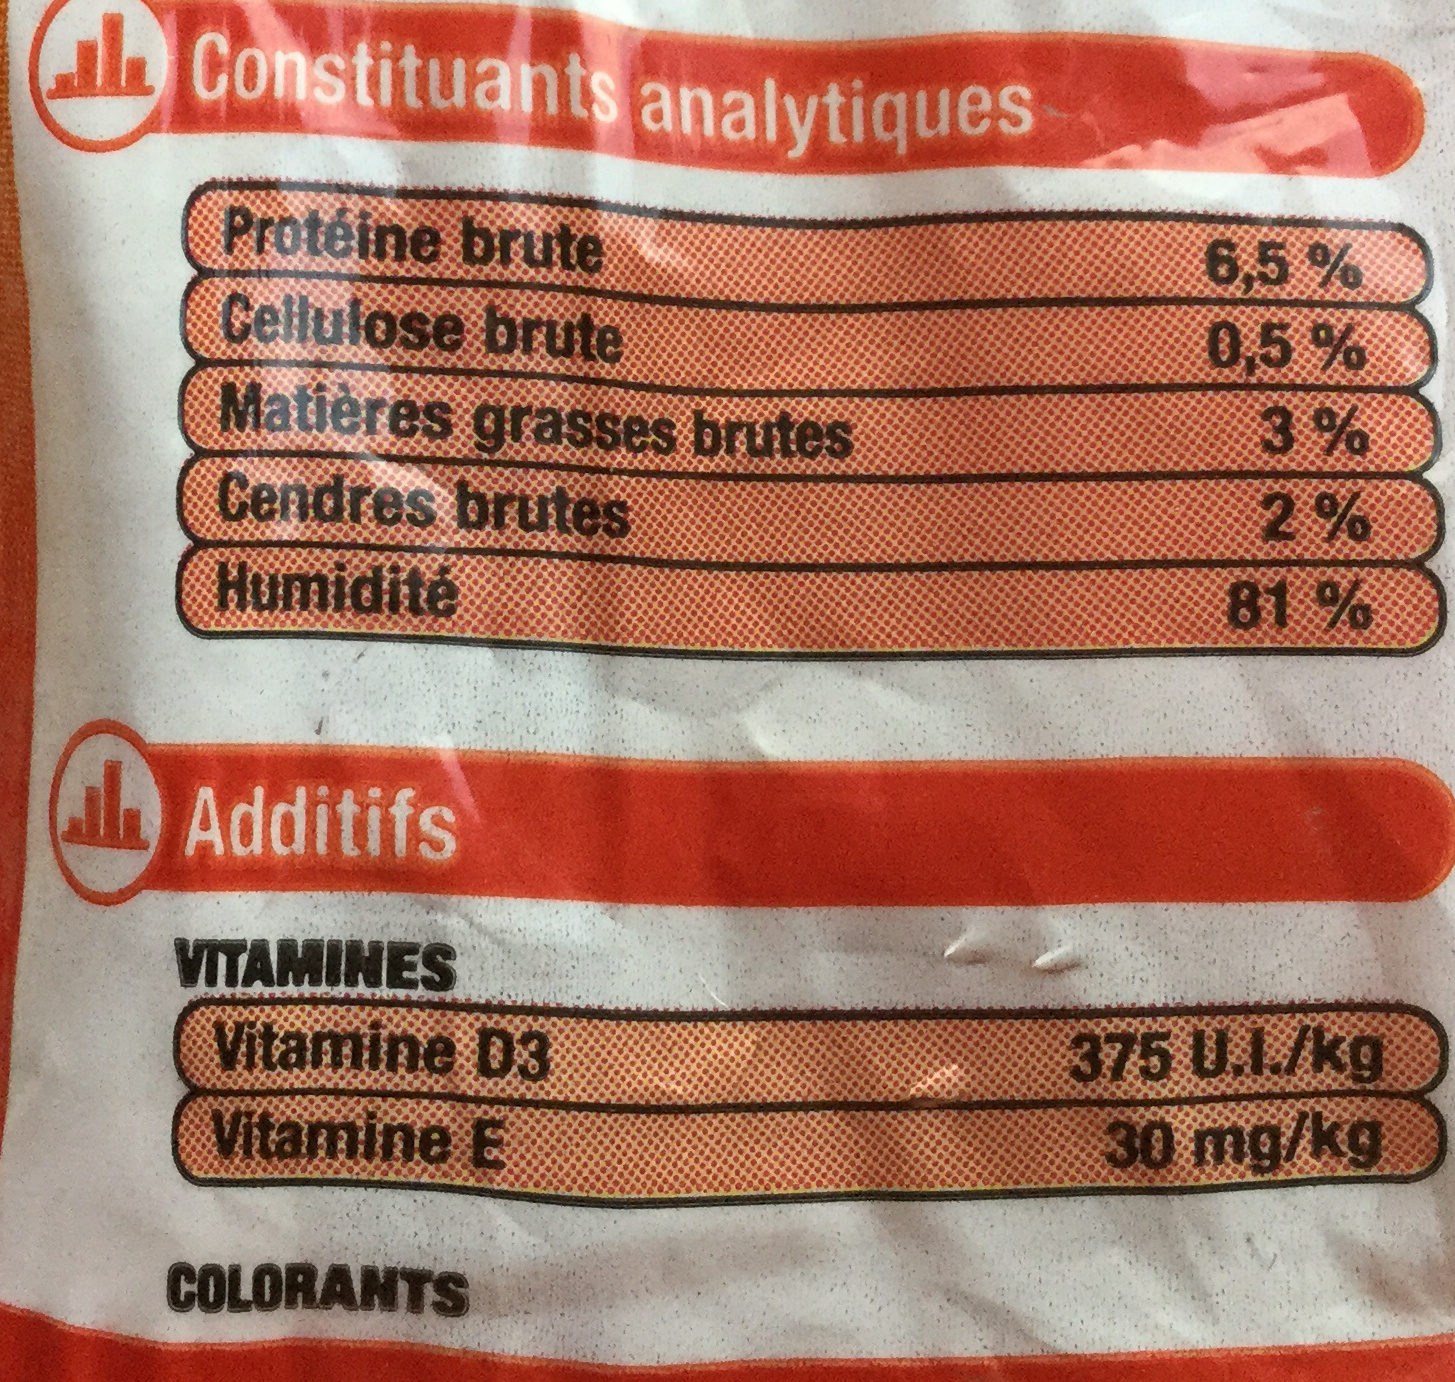 Les émincés en sauce - Nutrition facts